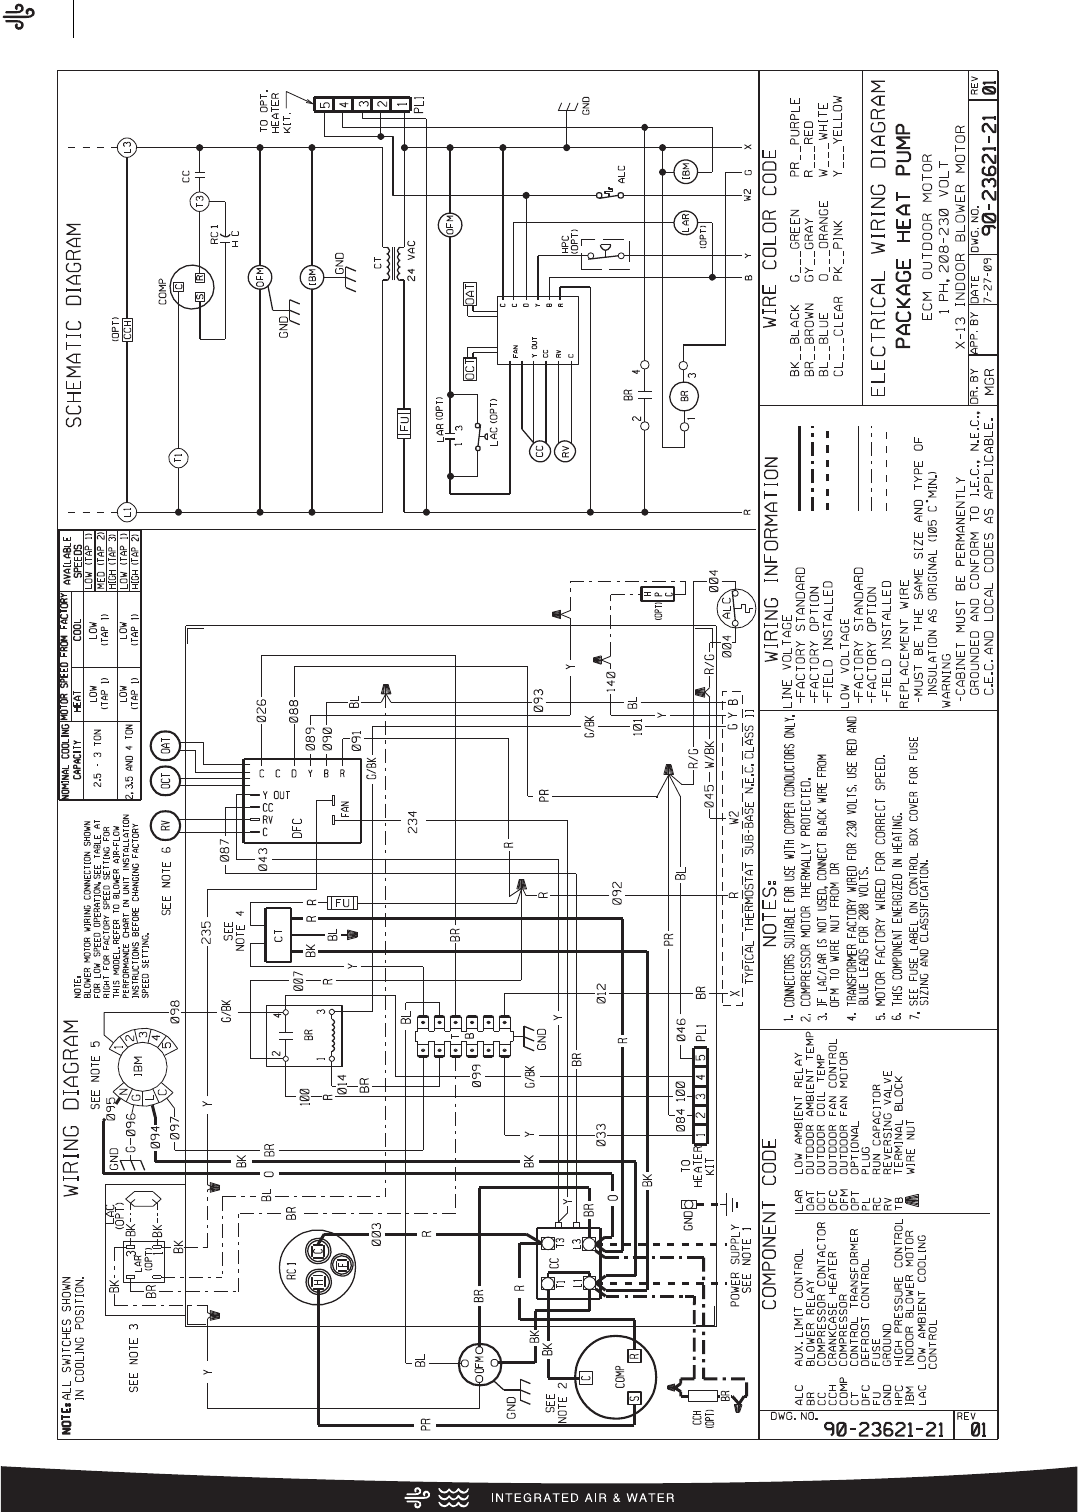 Rheem Classic Series Package Heat Pump Specification Sheet